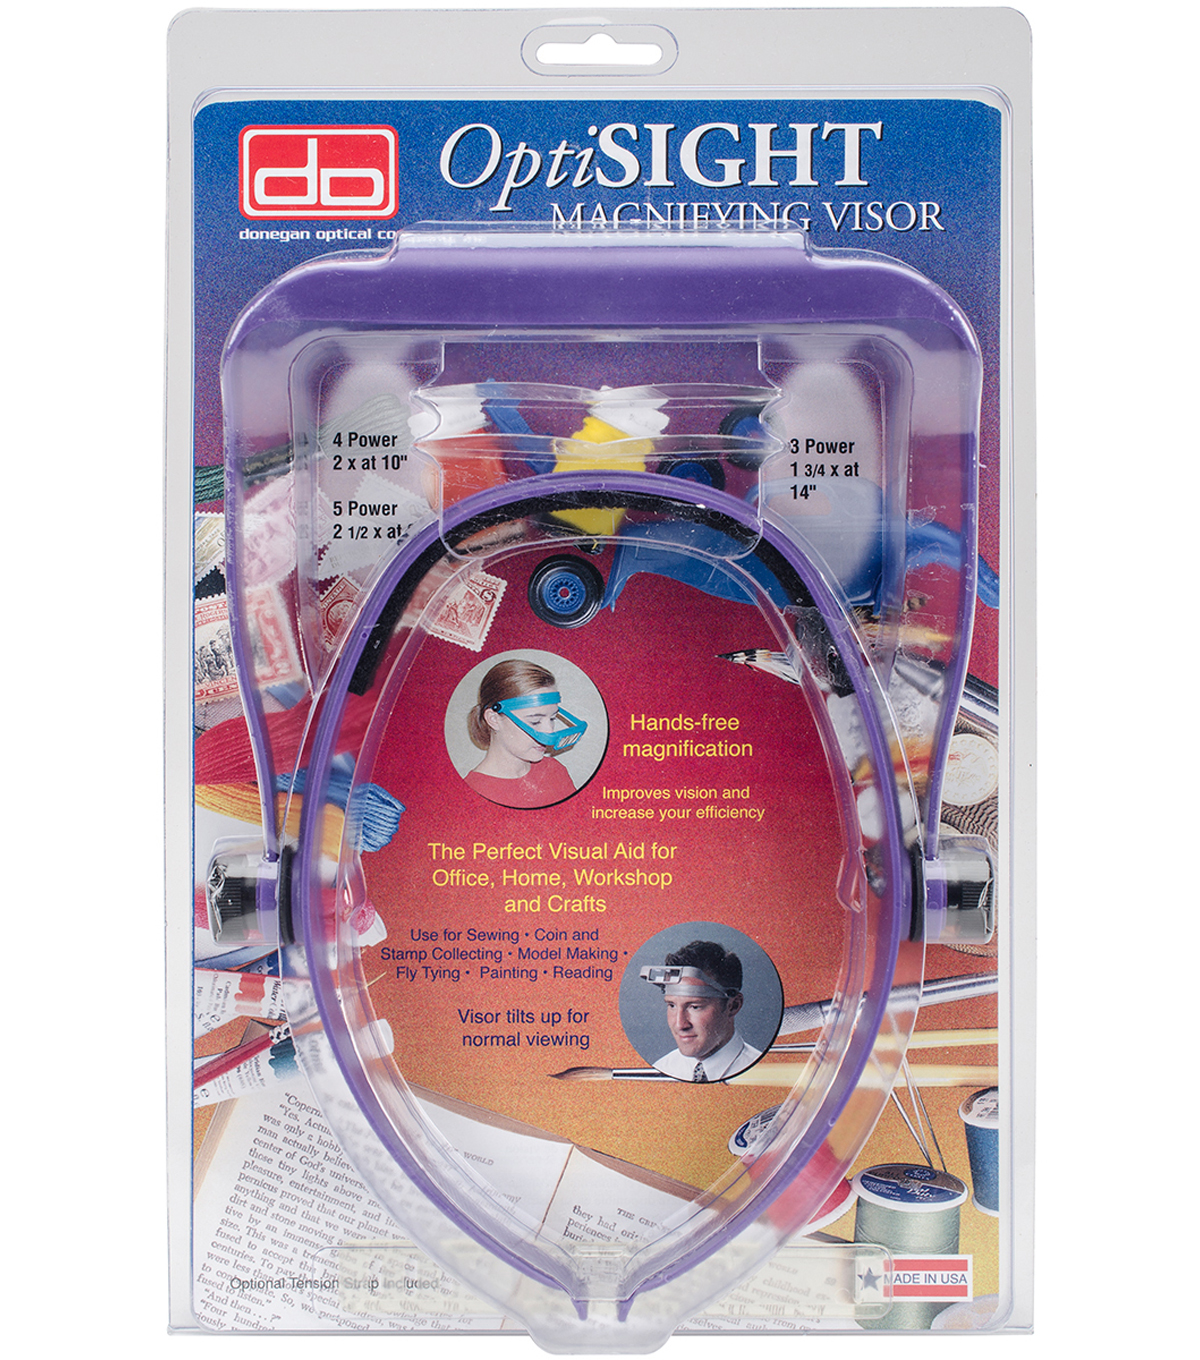 Donegan Optical Company OptiSIGHT Magnifying Visor-Deep Purple